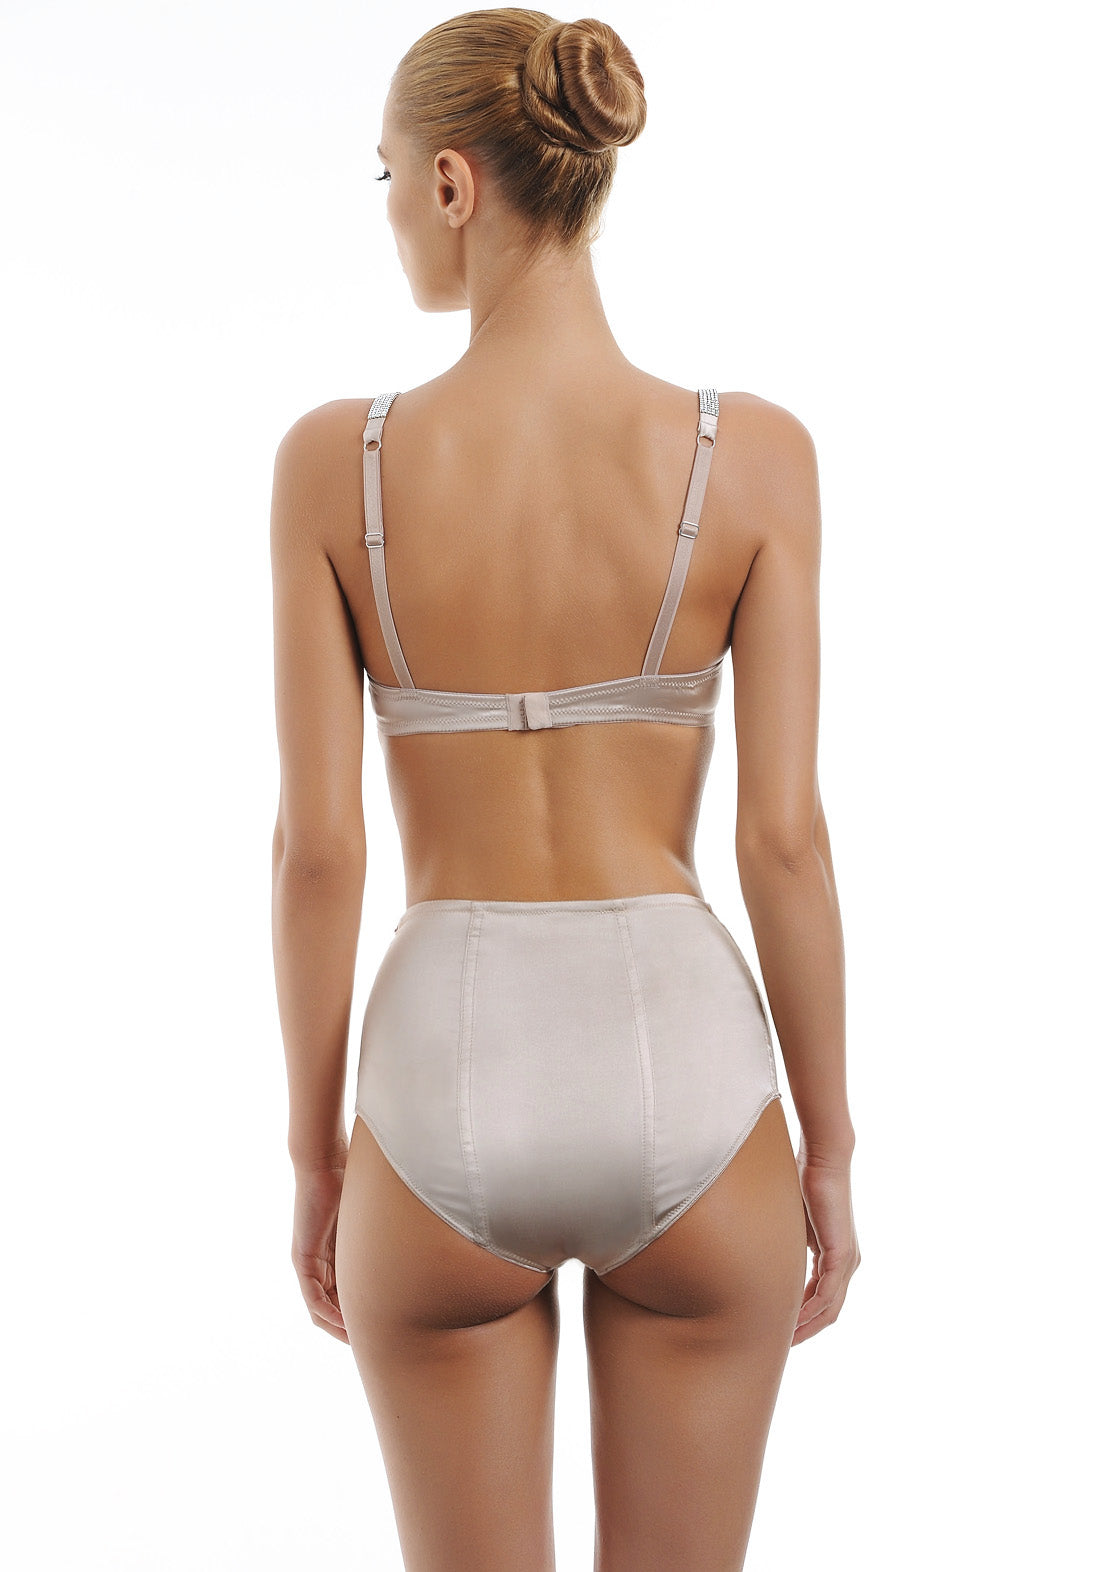 Hollywood Dream high waist brief with Swarovski crystals